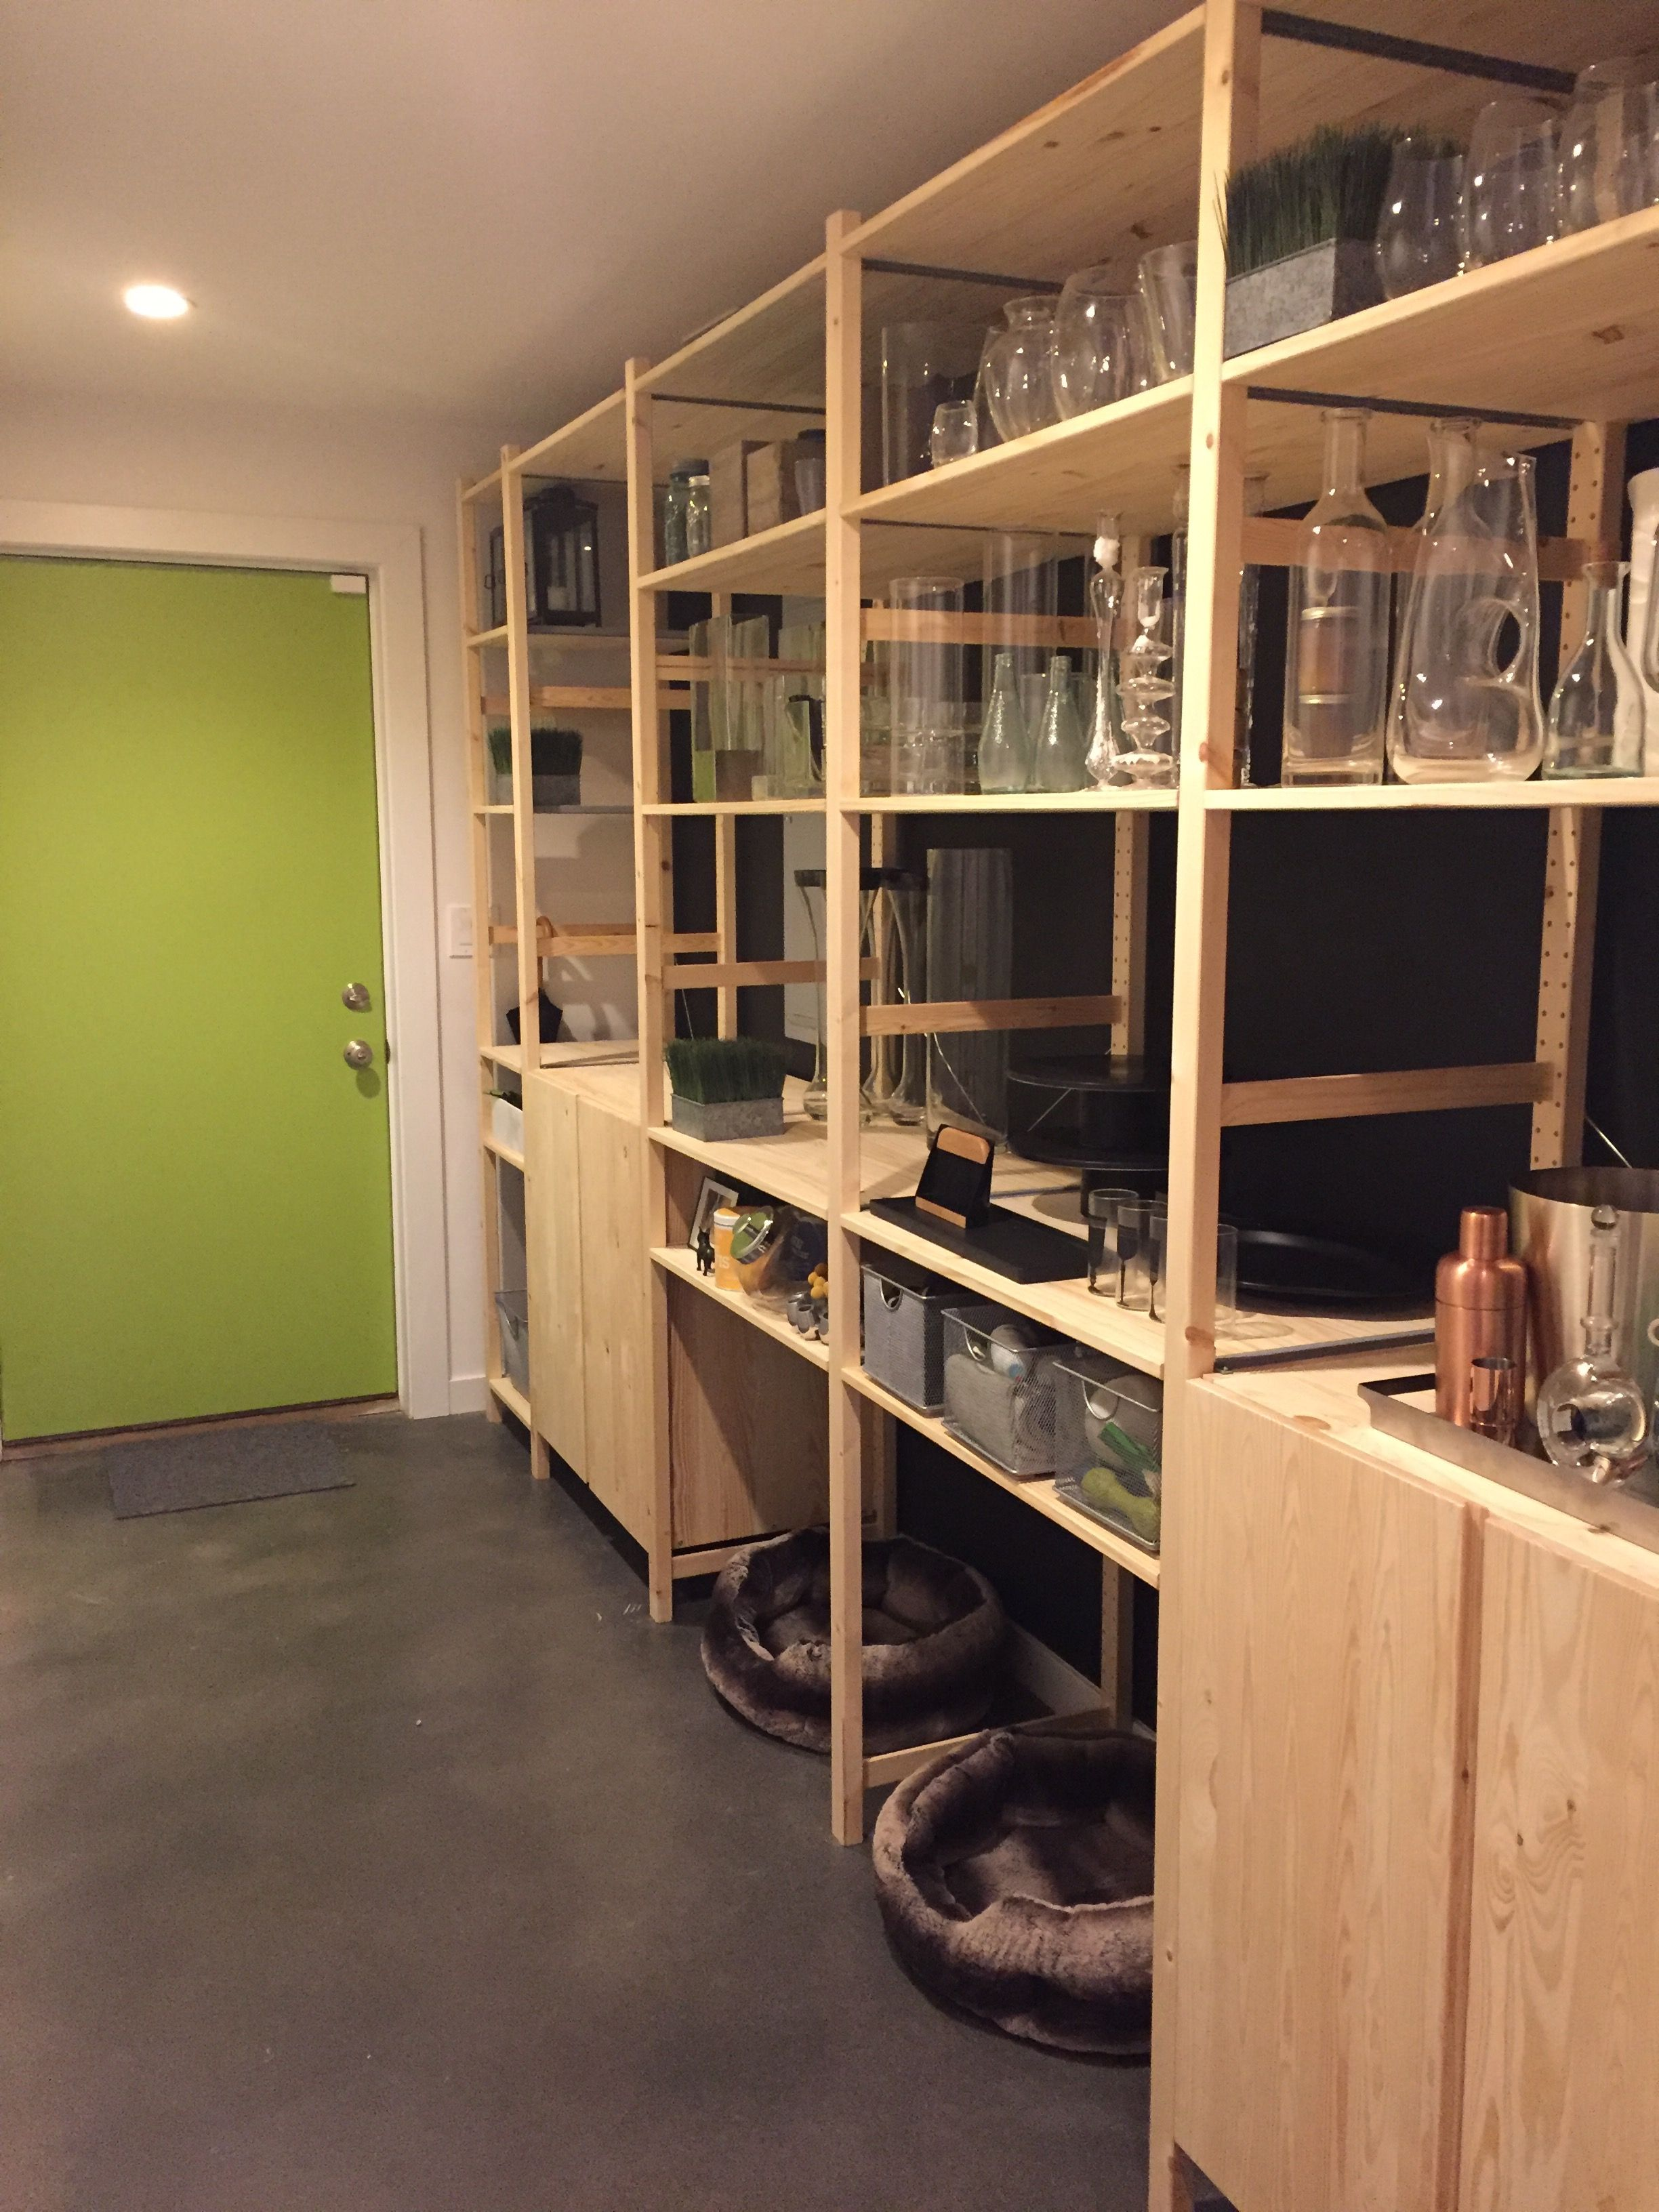 Ikea Schlafzimmer Hack My Mudroom, Pantry Update Using Ikea Ivar Storage System